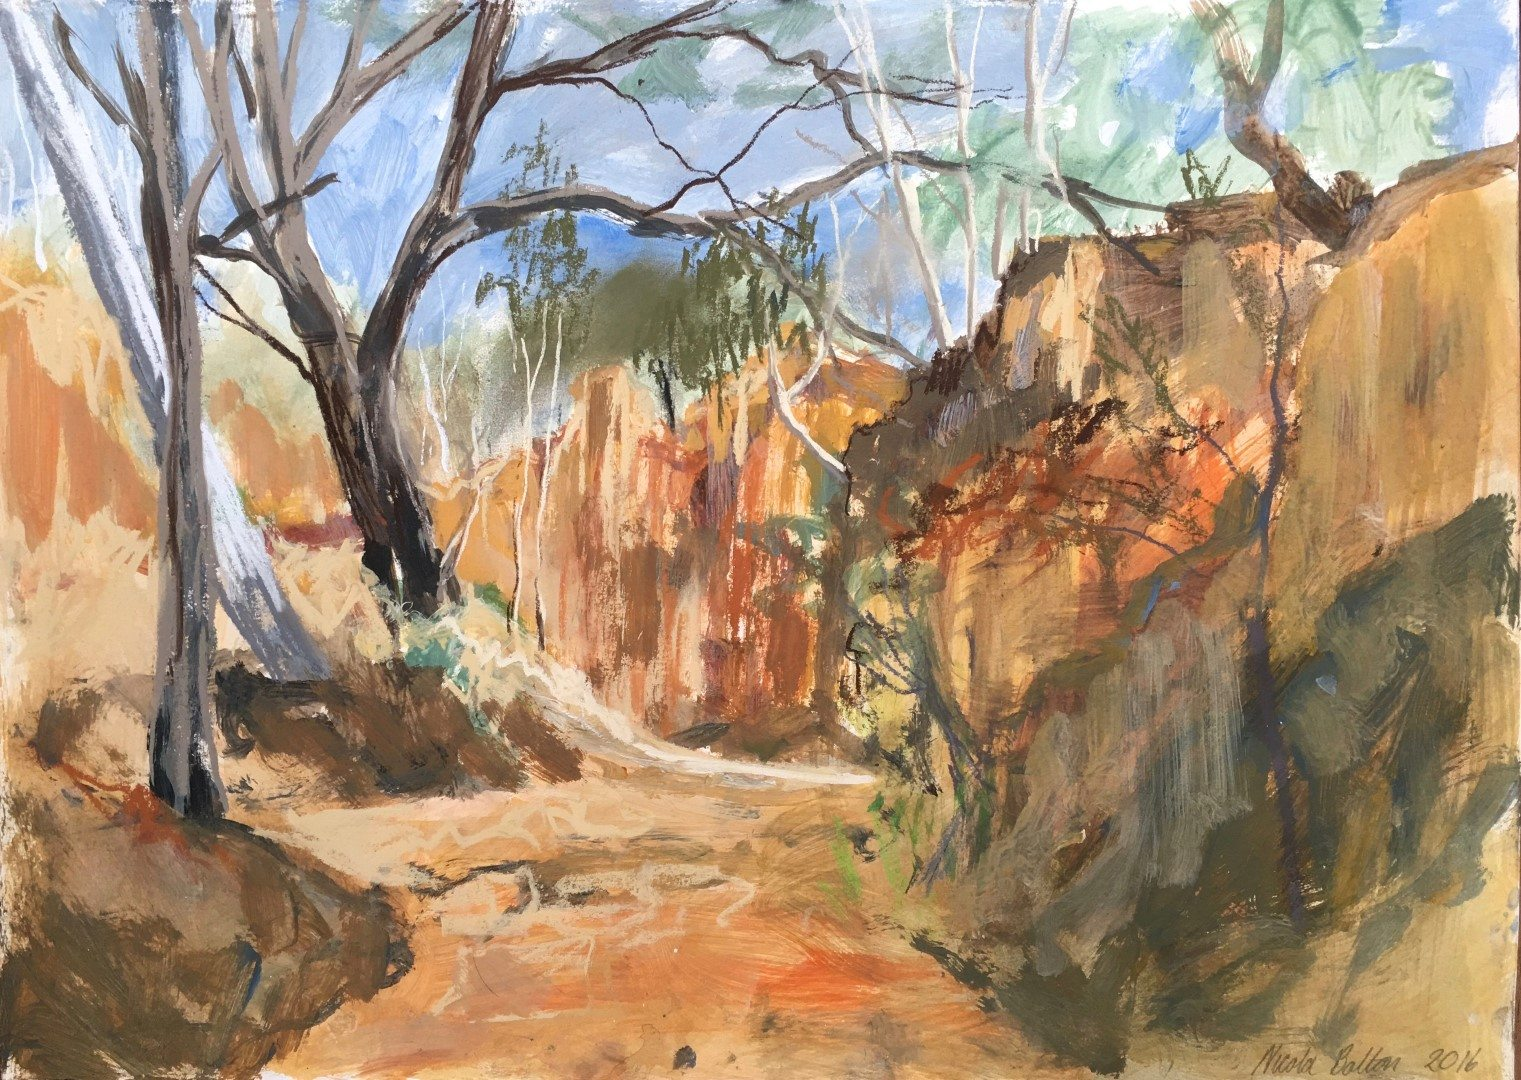 NSW Parliament Plein Air Painting Prize – October 2016